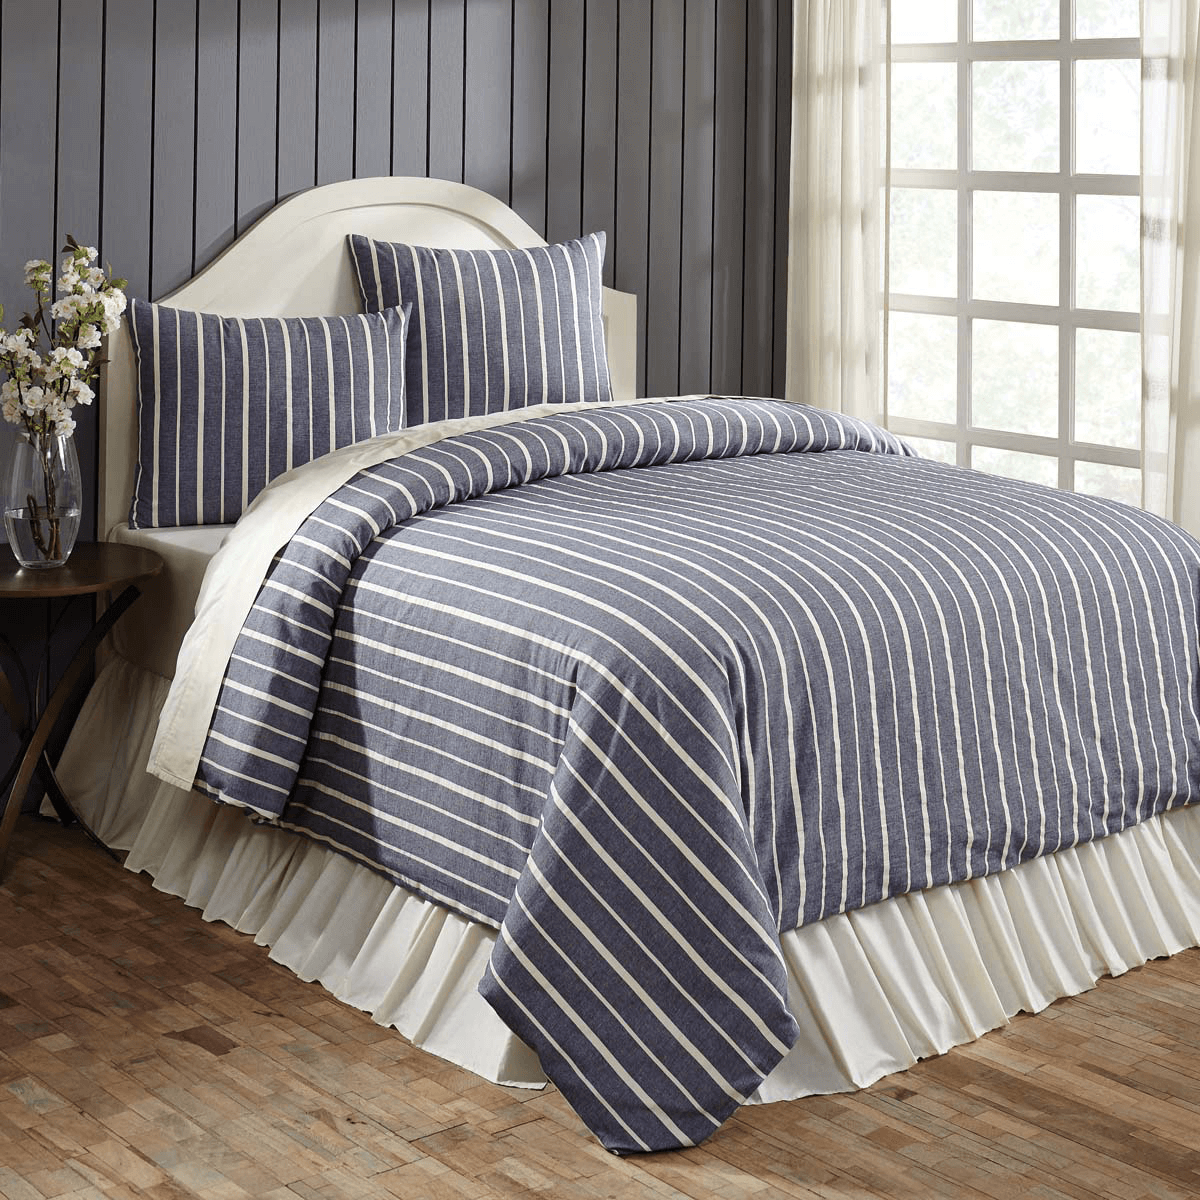 Collector Stripe Navy Queen Duvet Cover Set Teton